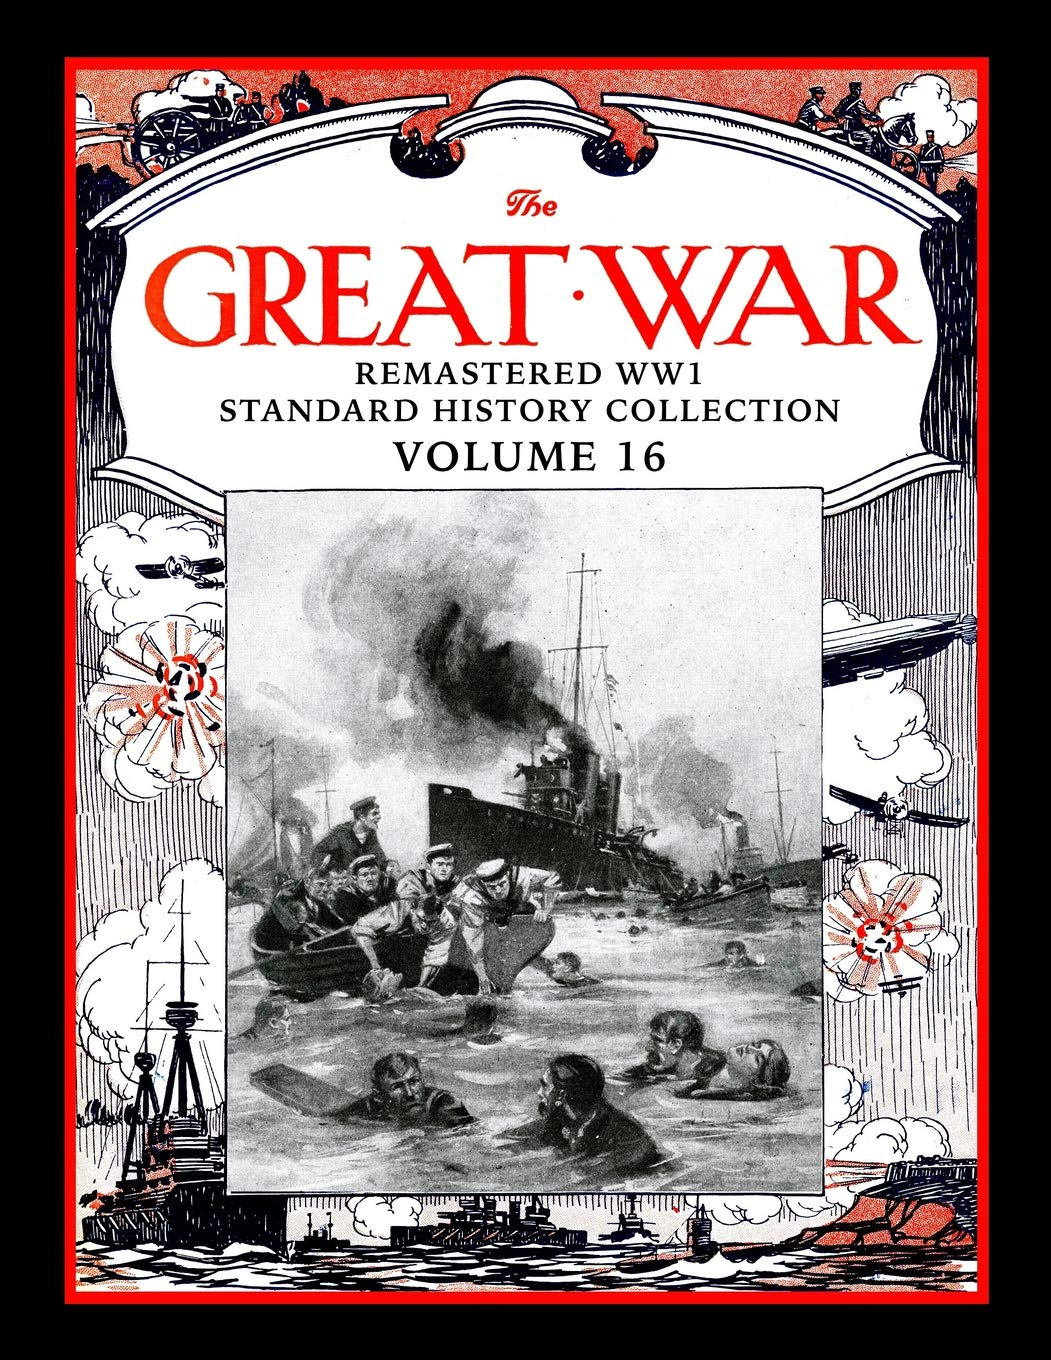 Remastered WW1 Standard History Collection Volume 16 The Great War